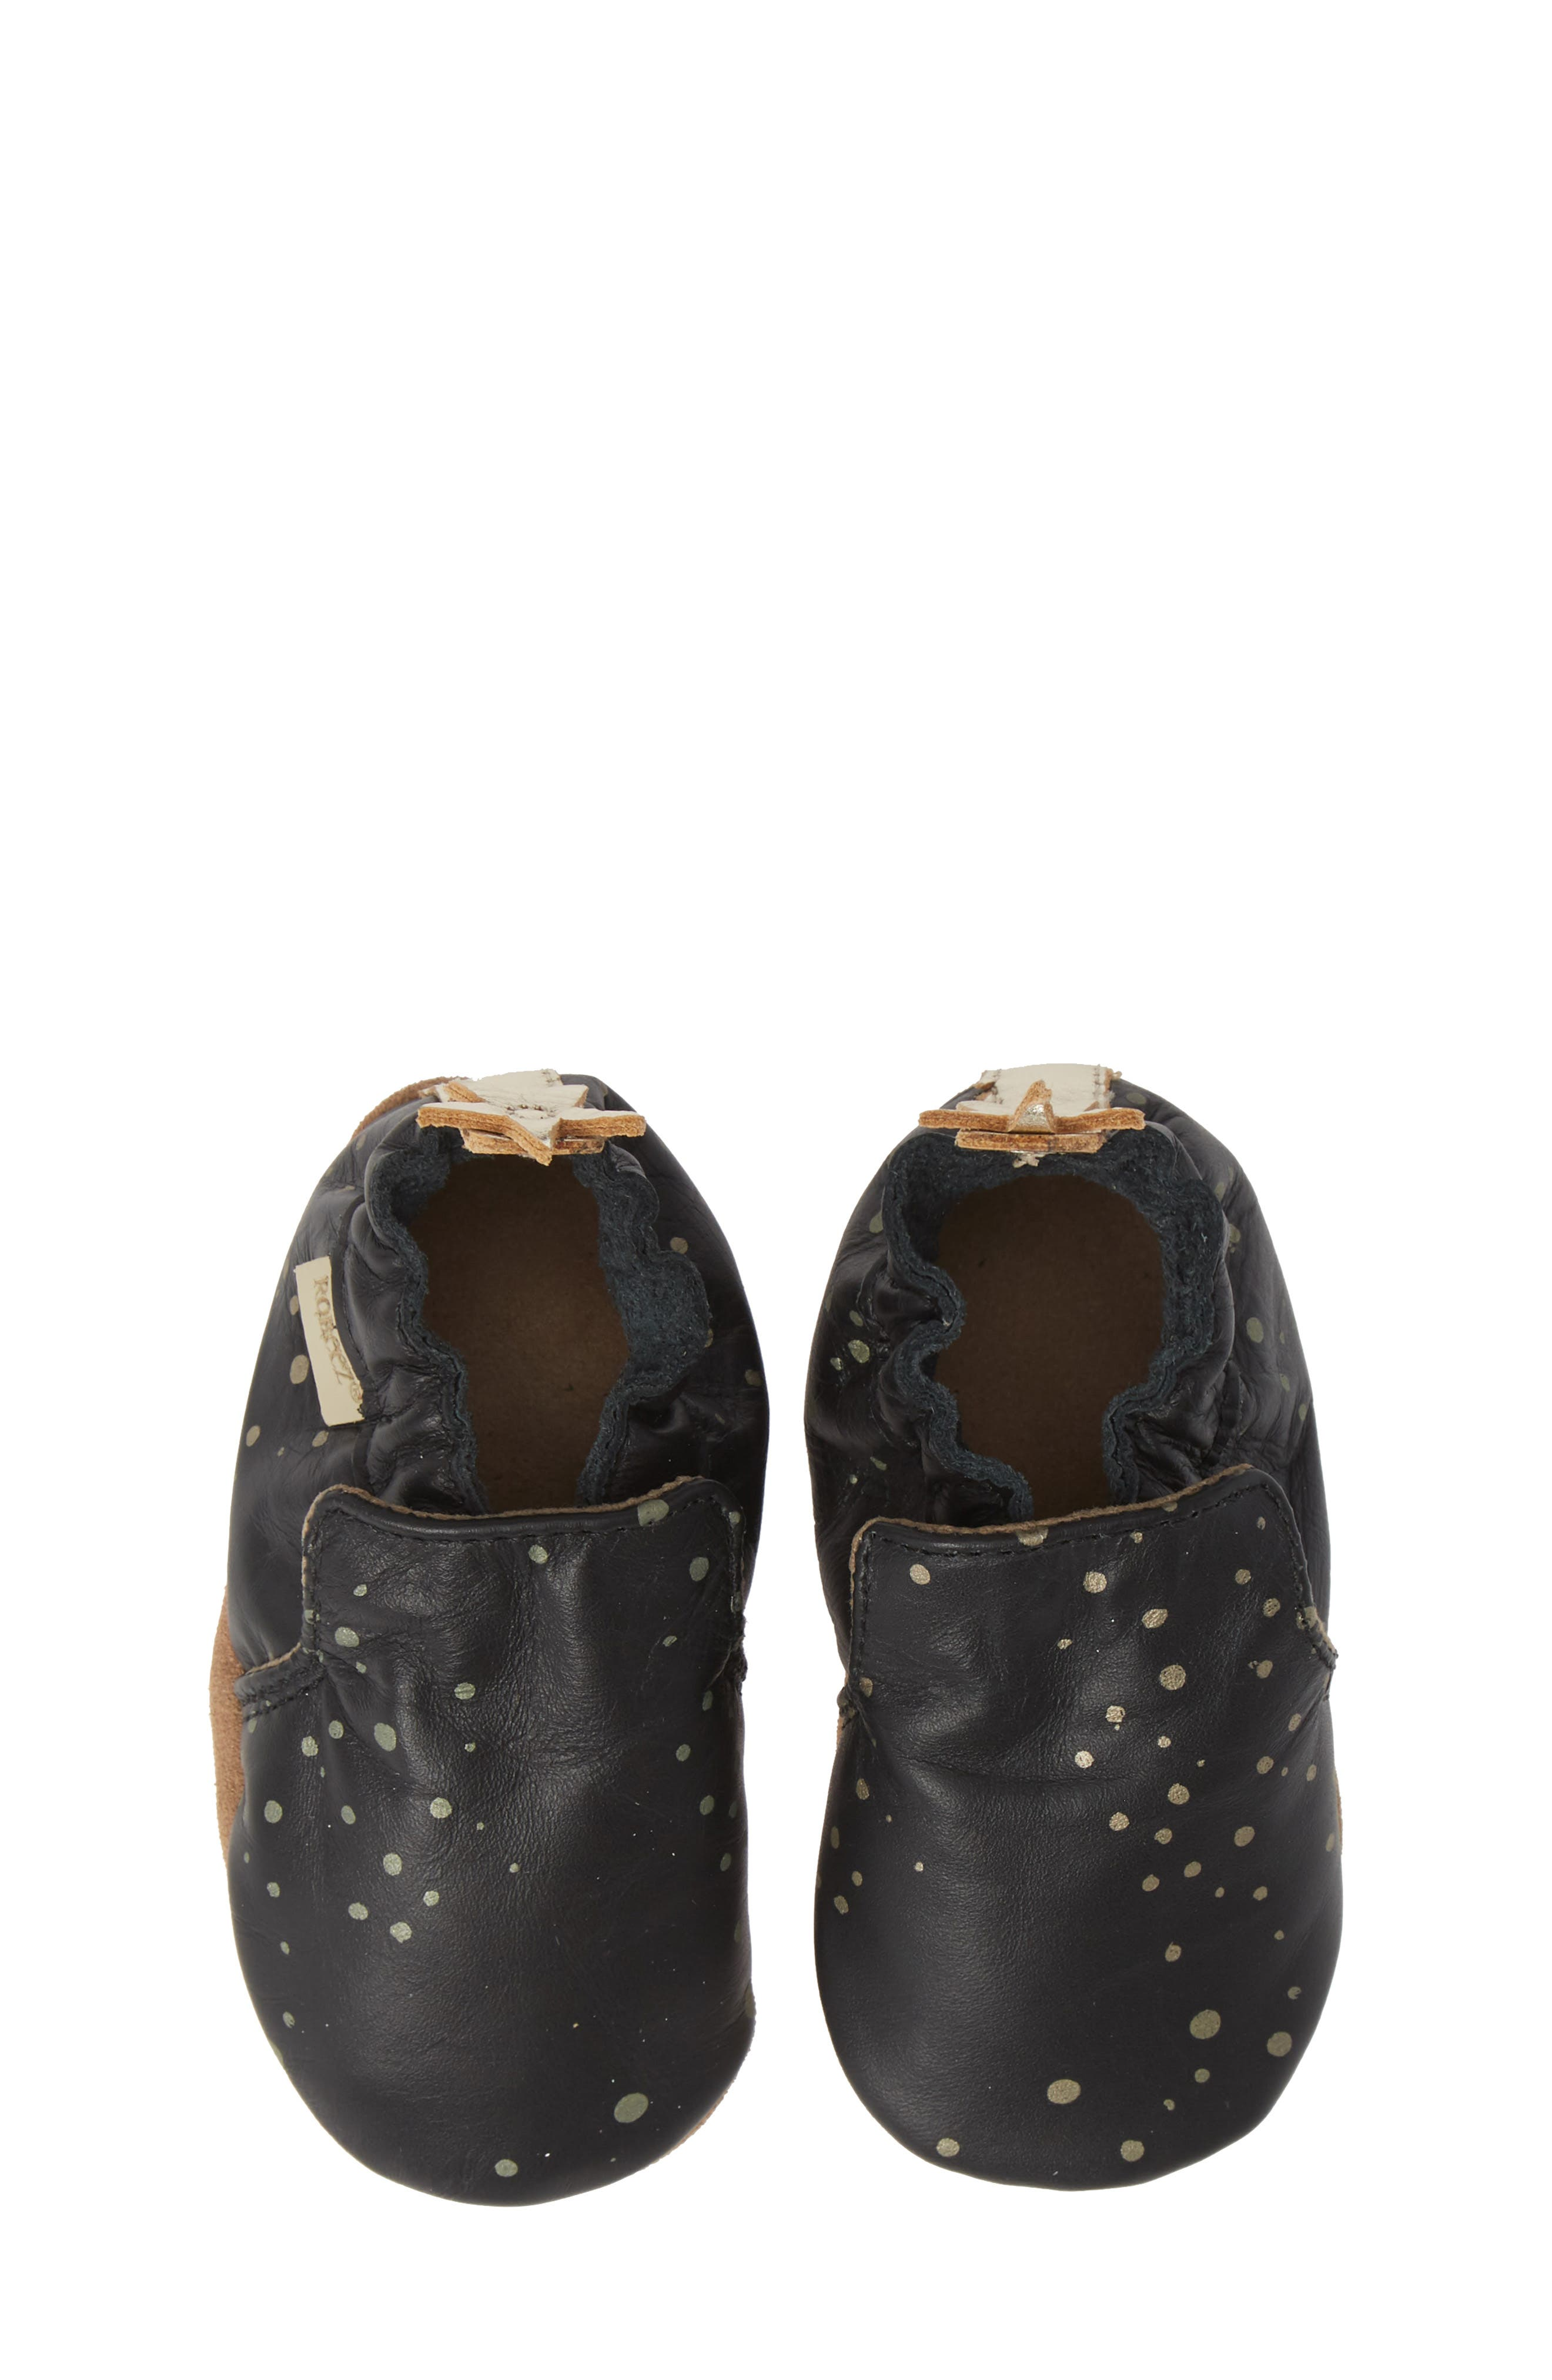 Galaxy Girl Moccasin Crib Shoe,                             Main thumbnail 1, color,                             BLACK